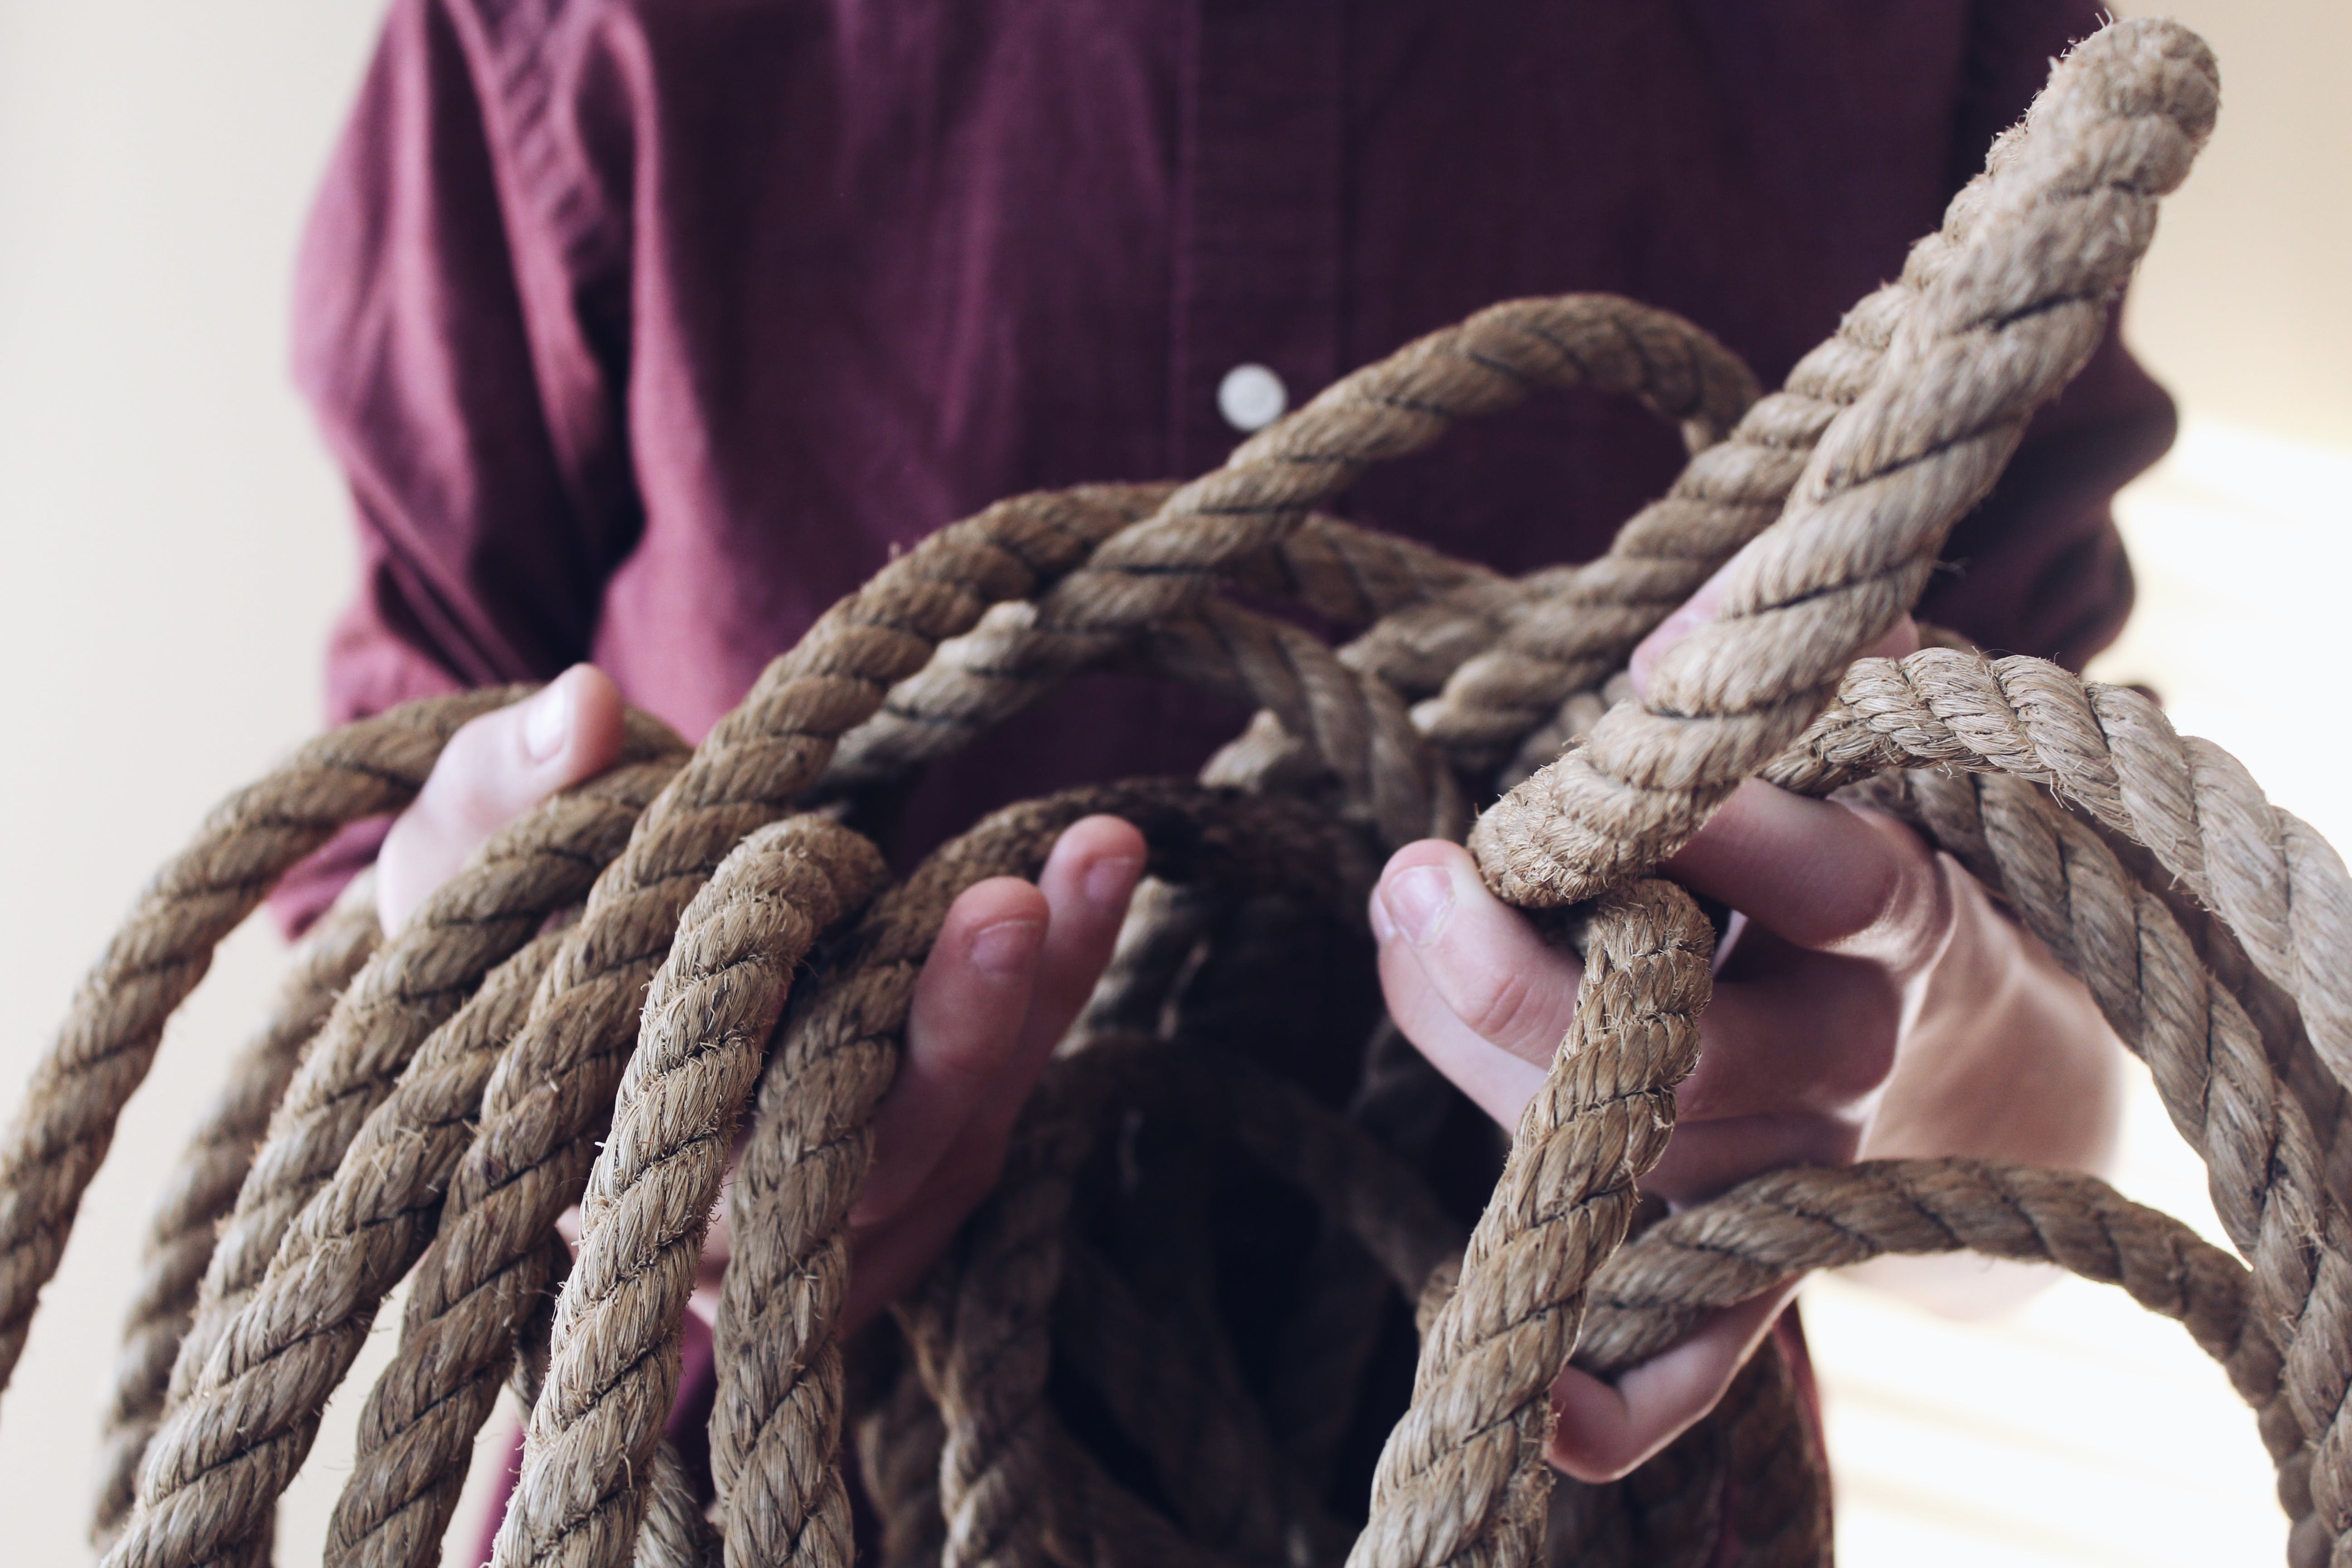 Close-up Photography of Man Holding a Rope